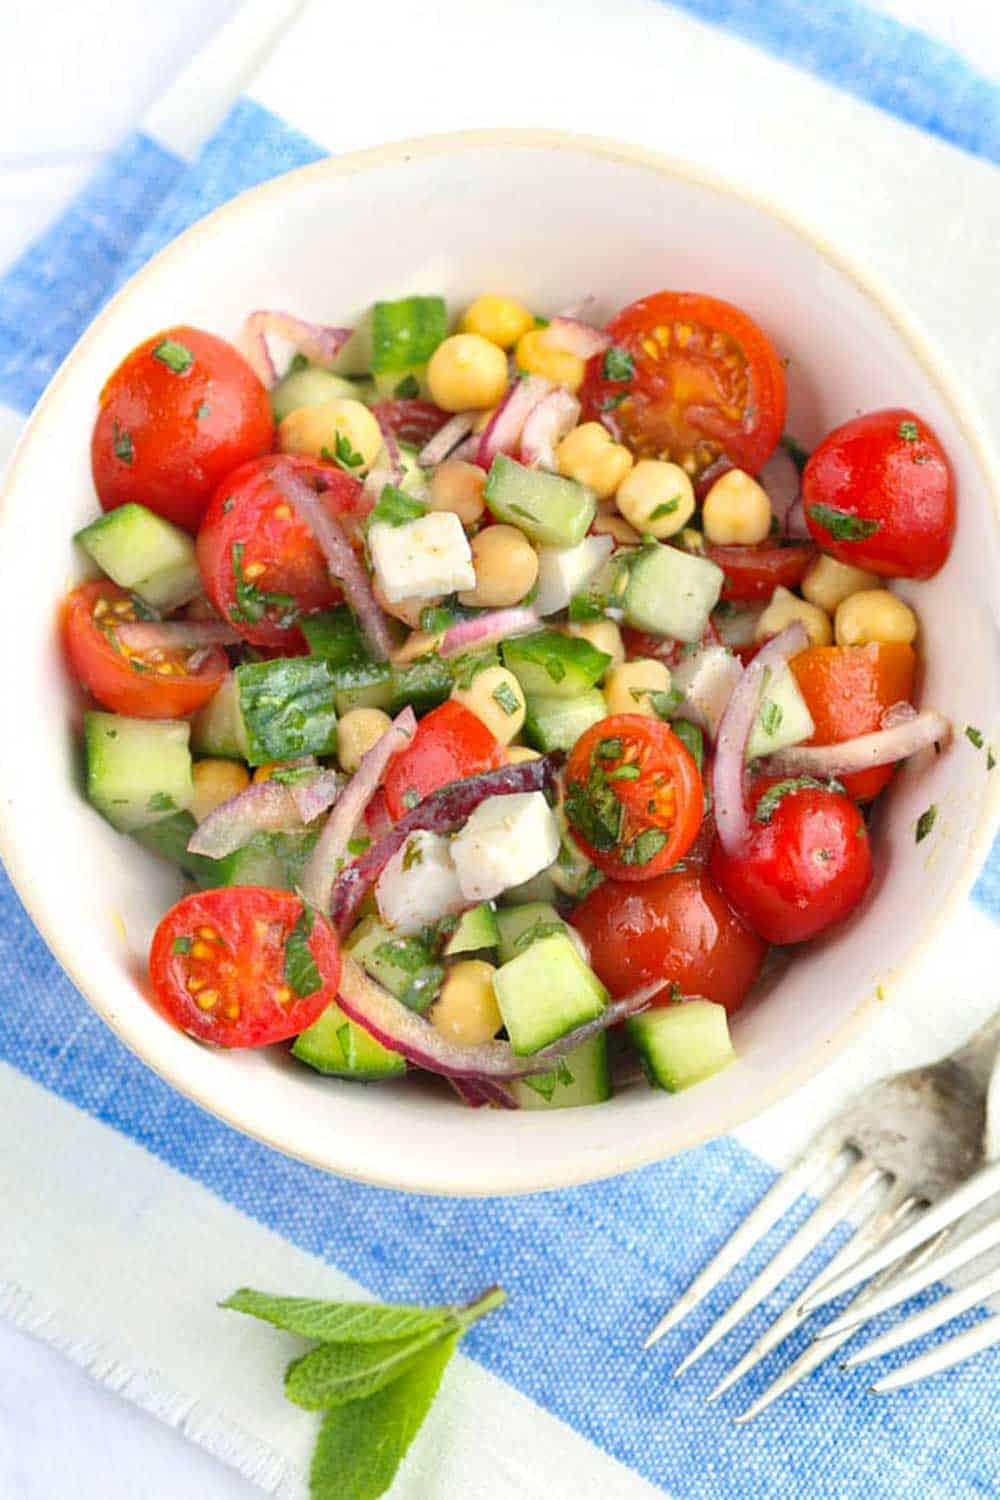 Mediterranean chickpea salad with cucumbers, feta, cherry tomatoes, herbs and lemony dressing